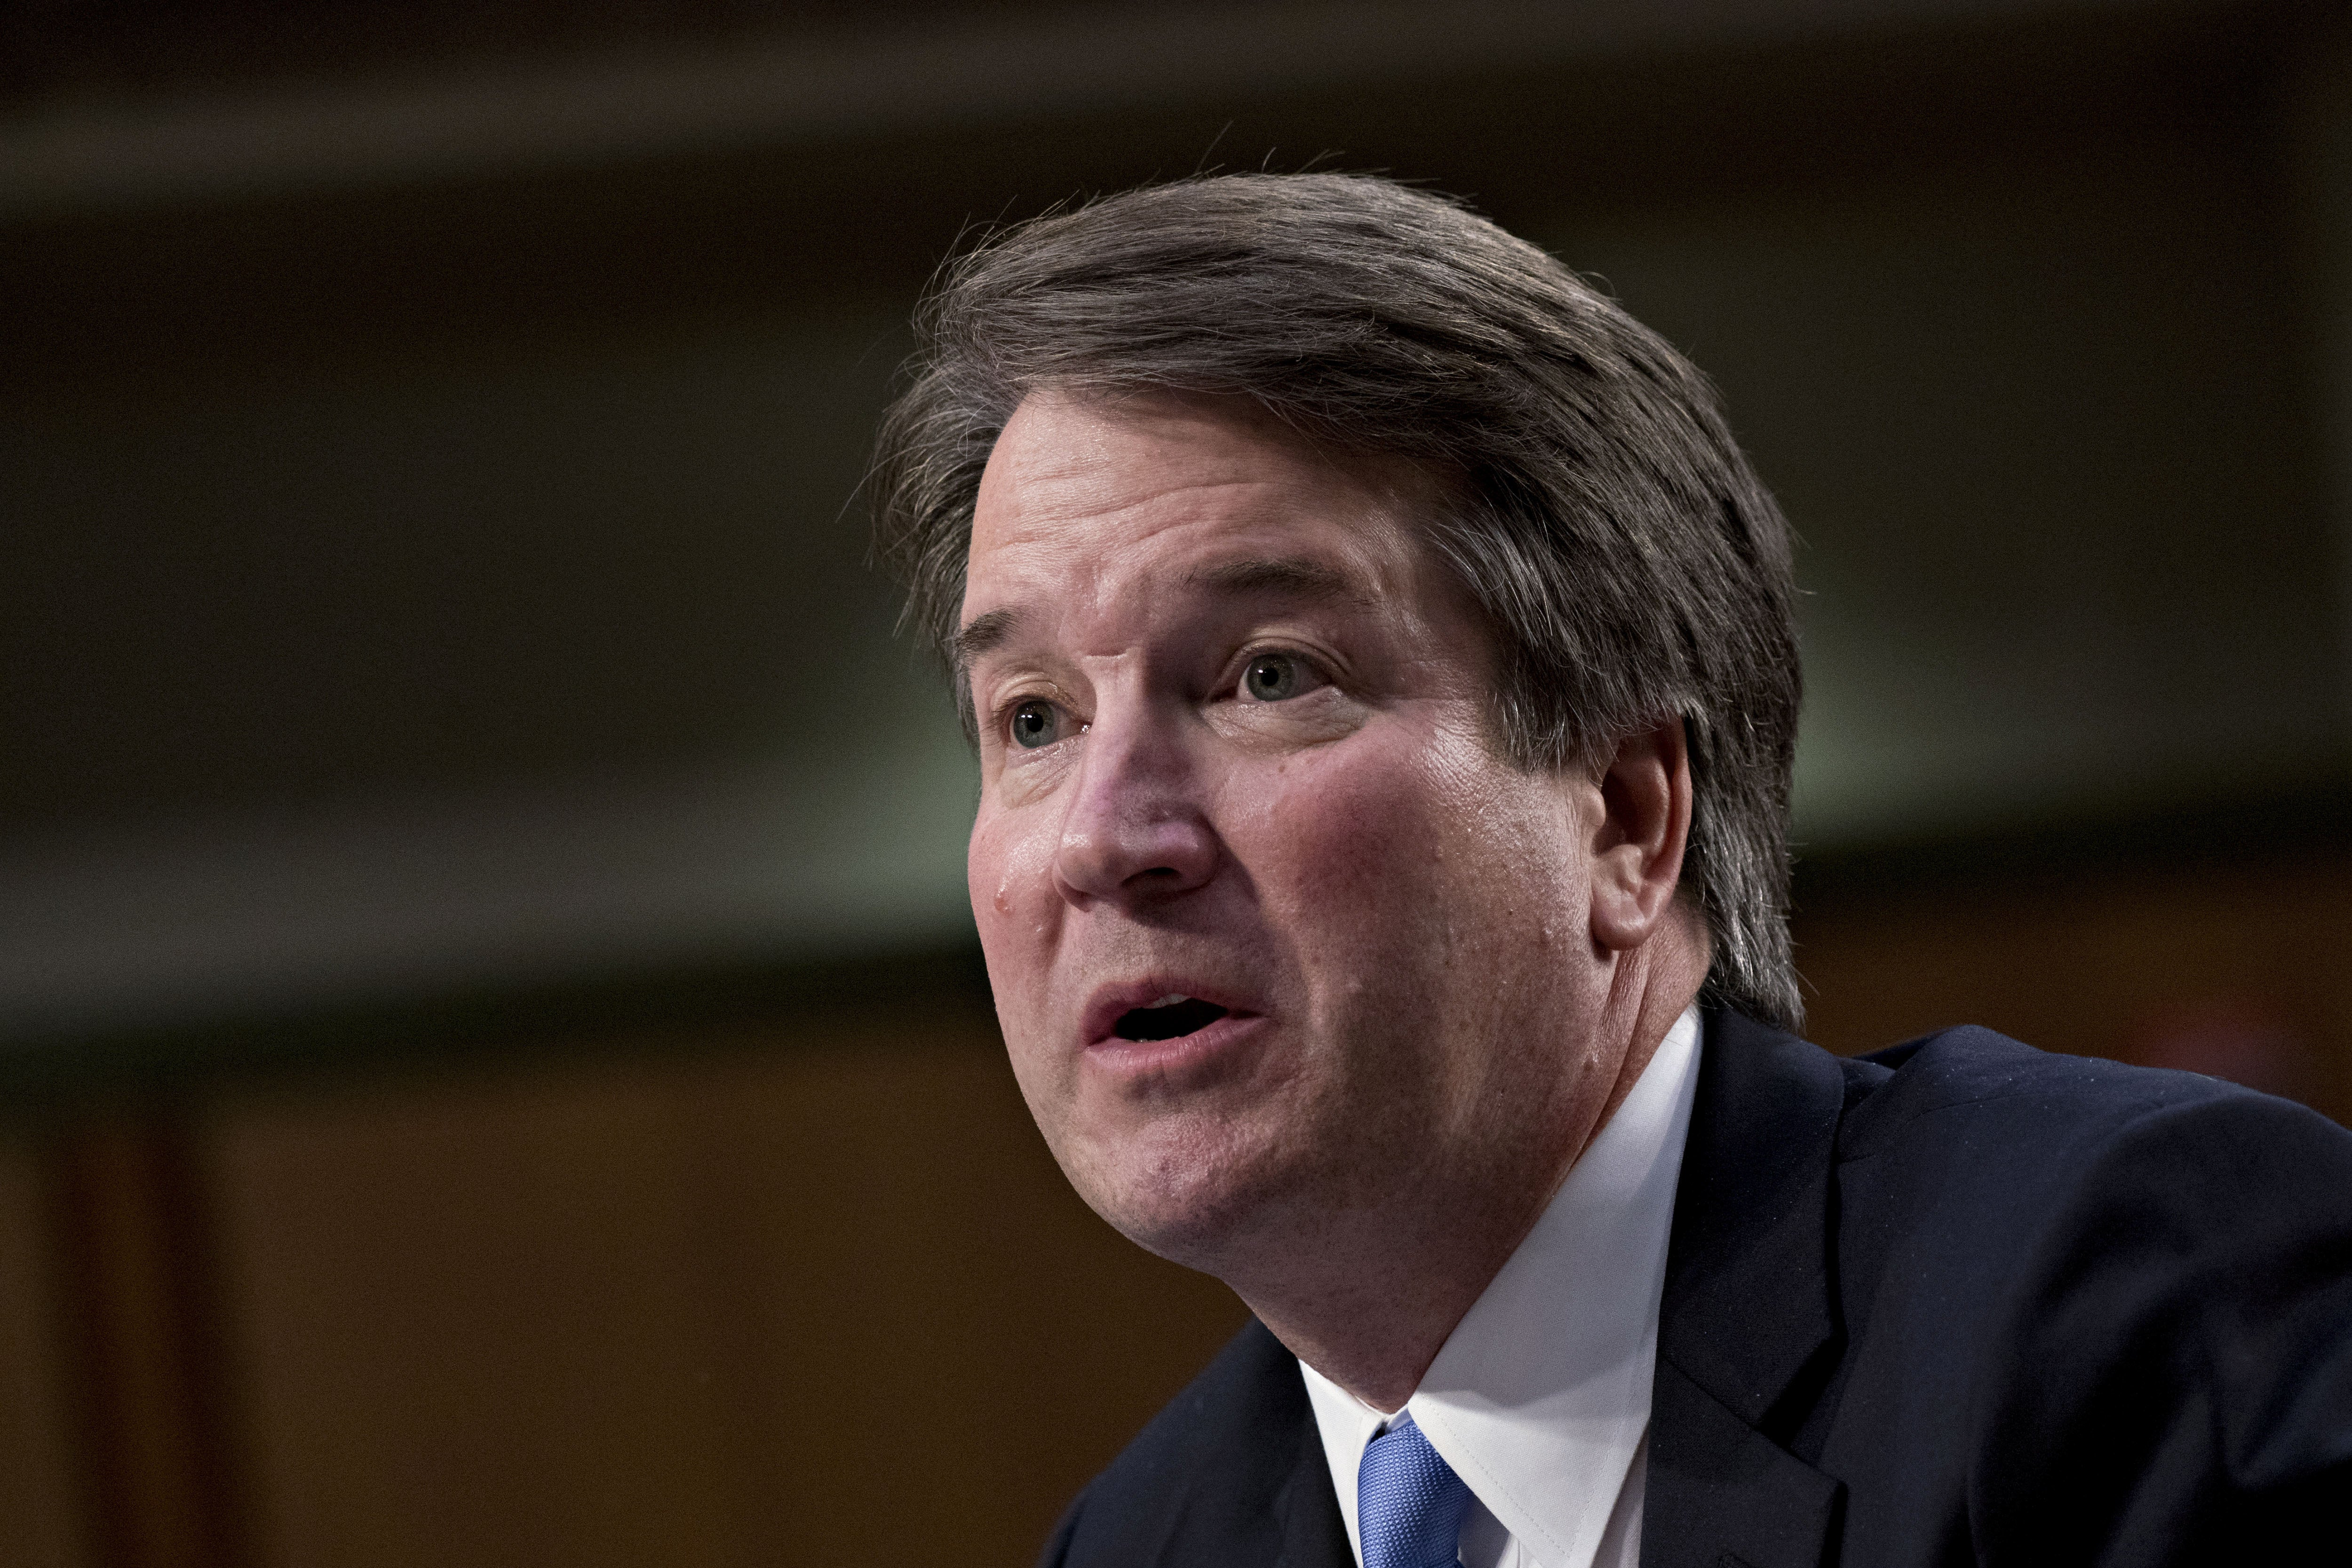 Sens. Susan Collins, Joe Manchin Confirm They Will Vote 'Yes' For Kavanaugh